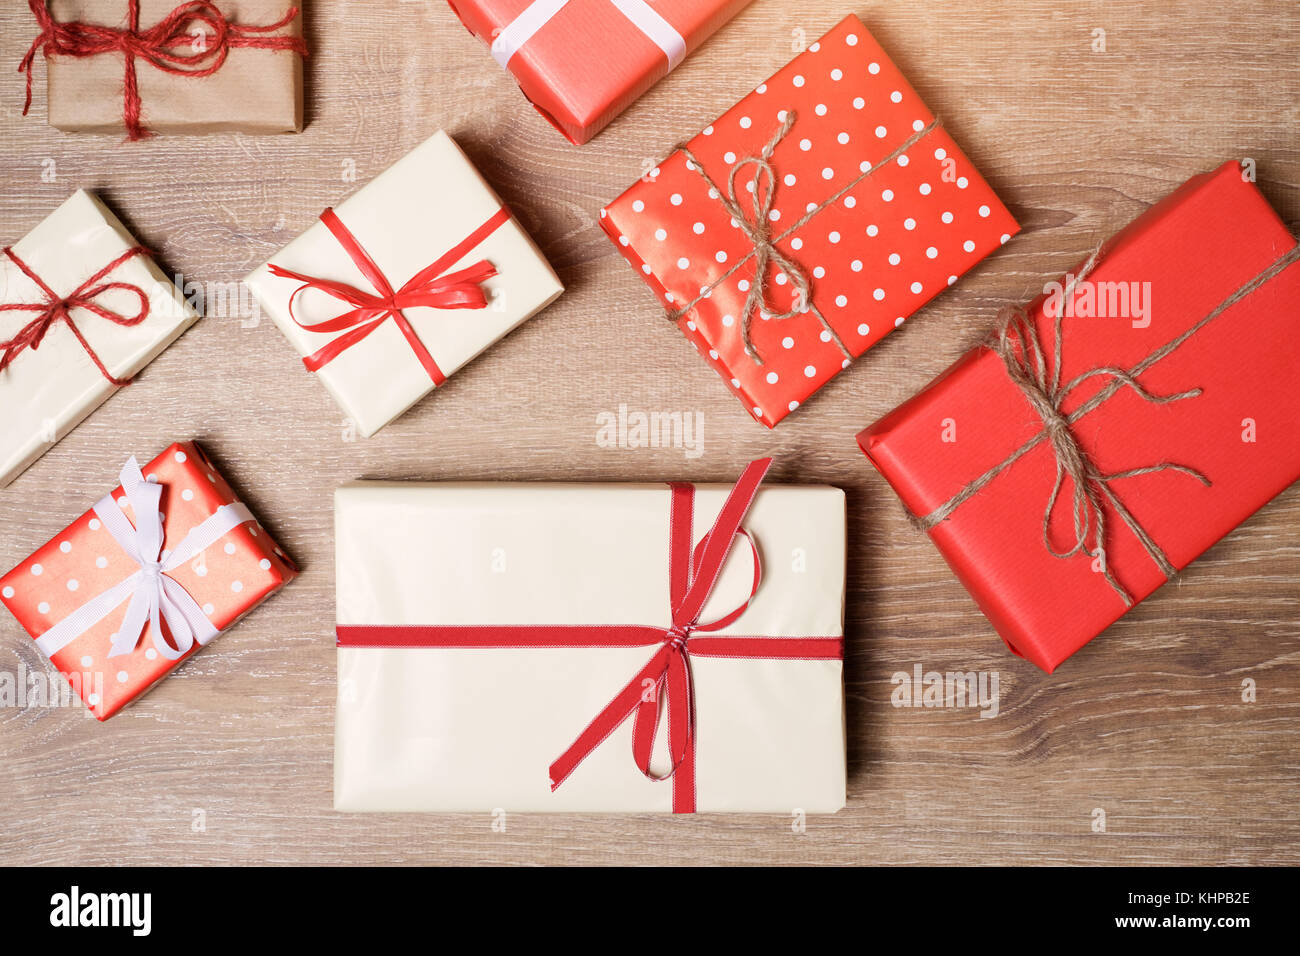 Christmas presents boxes laid on a wooden table background - Stock Image